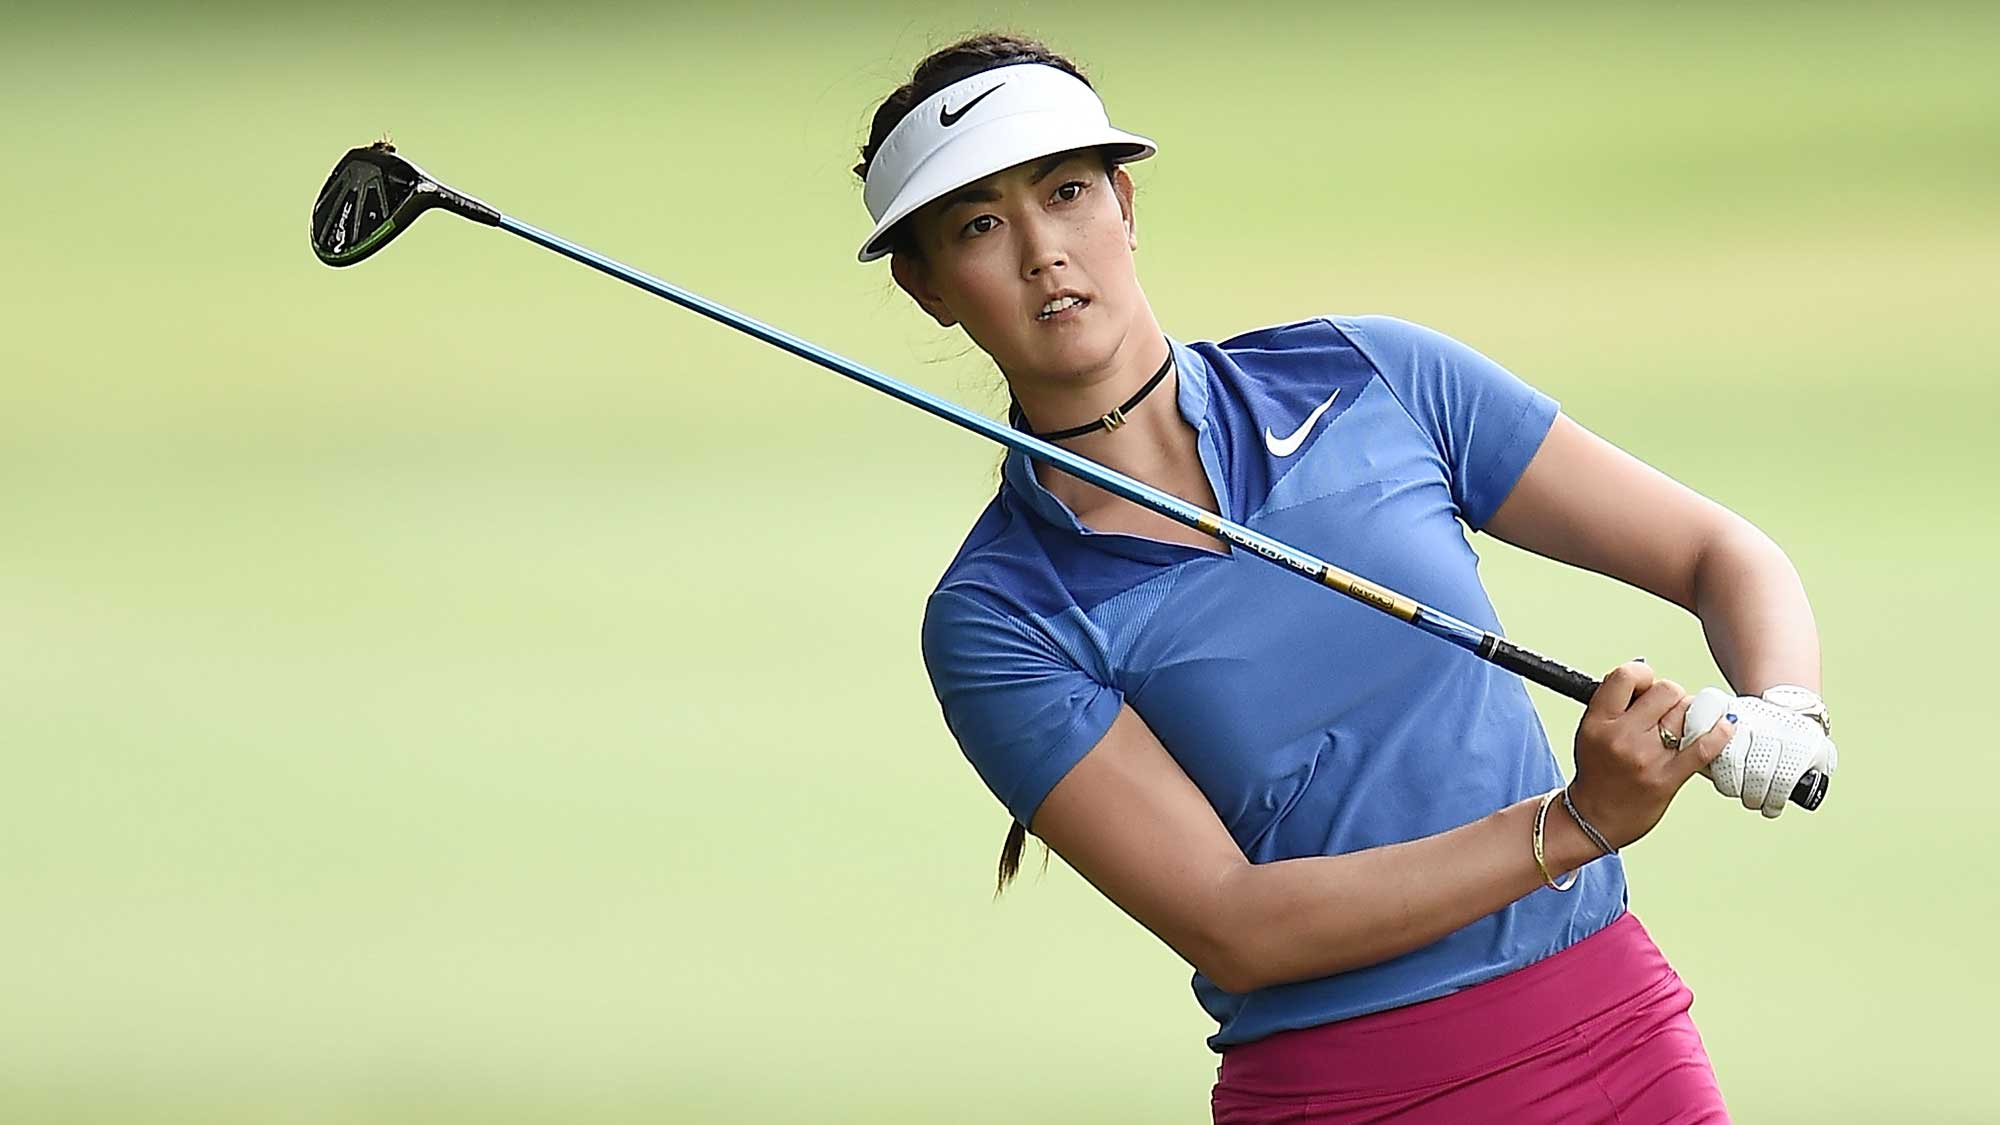 Michelle Wie hits her second shot on the first hole during the final round of the Meijer LPGA Classic